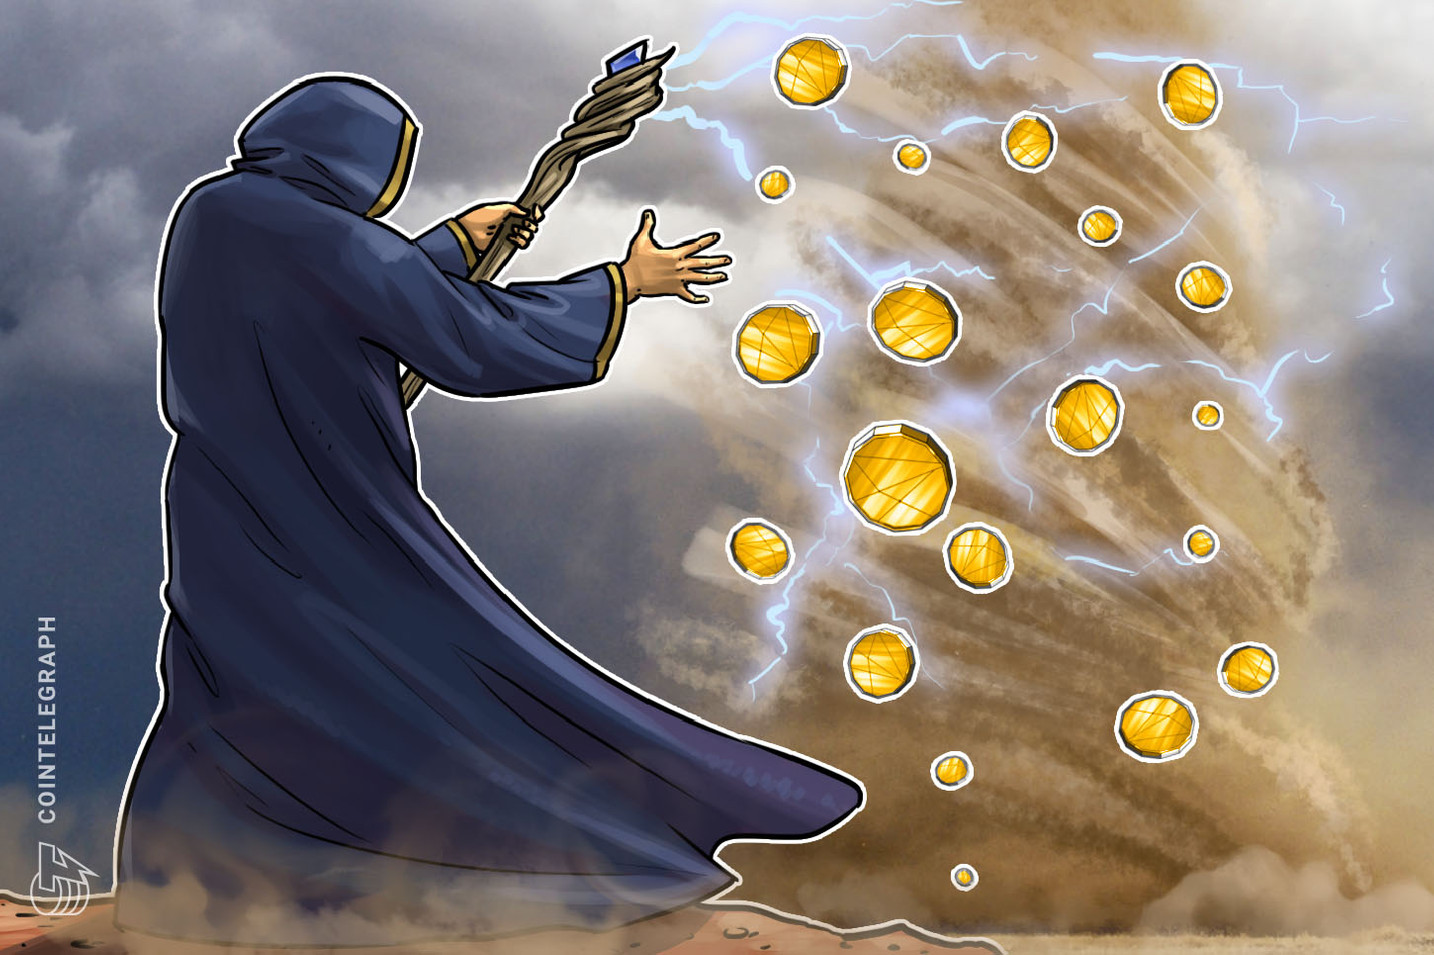 Thai 'Cryptocurrency Wizard' Nabbed for Alleged Role in $16M Heist